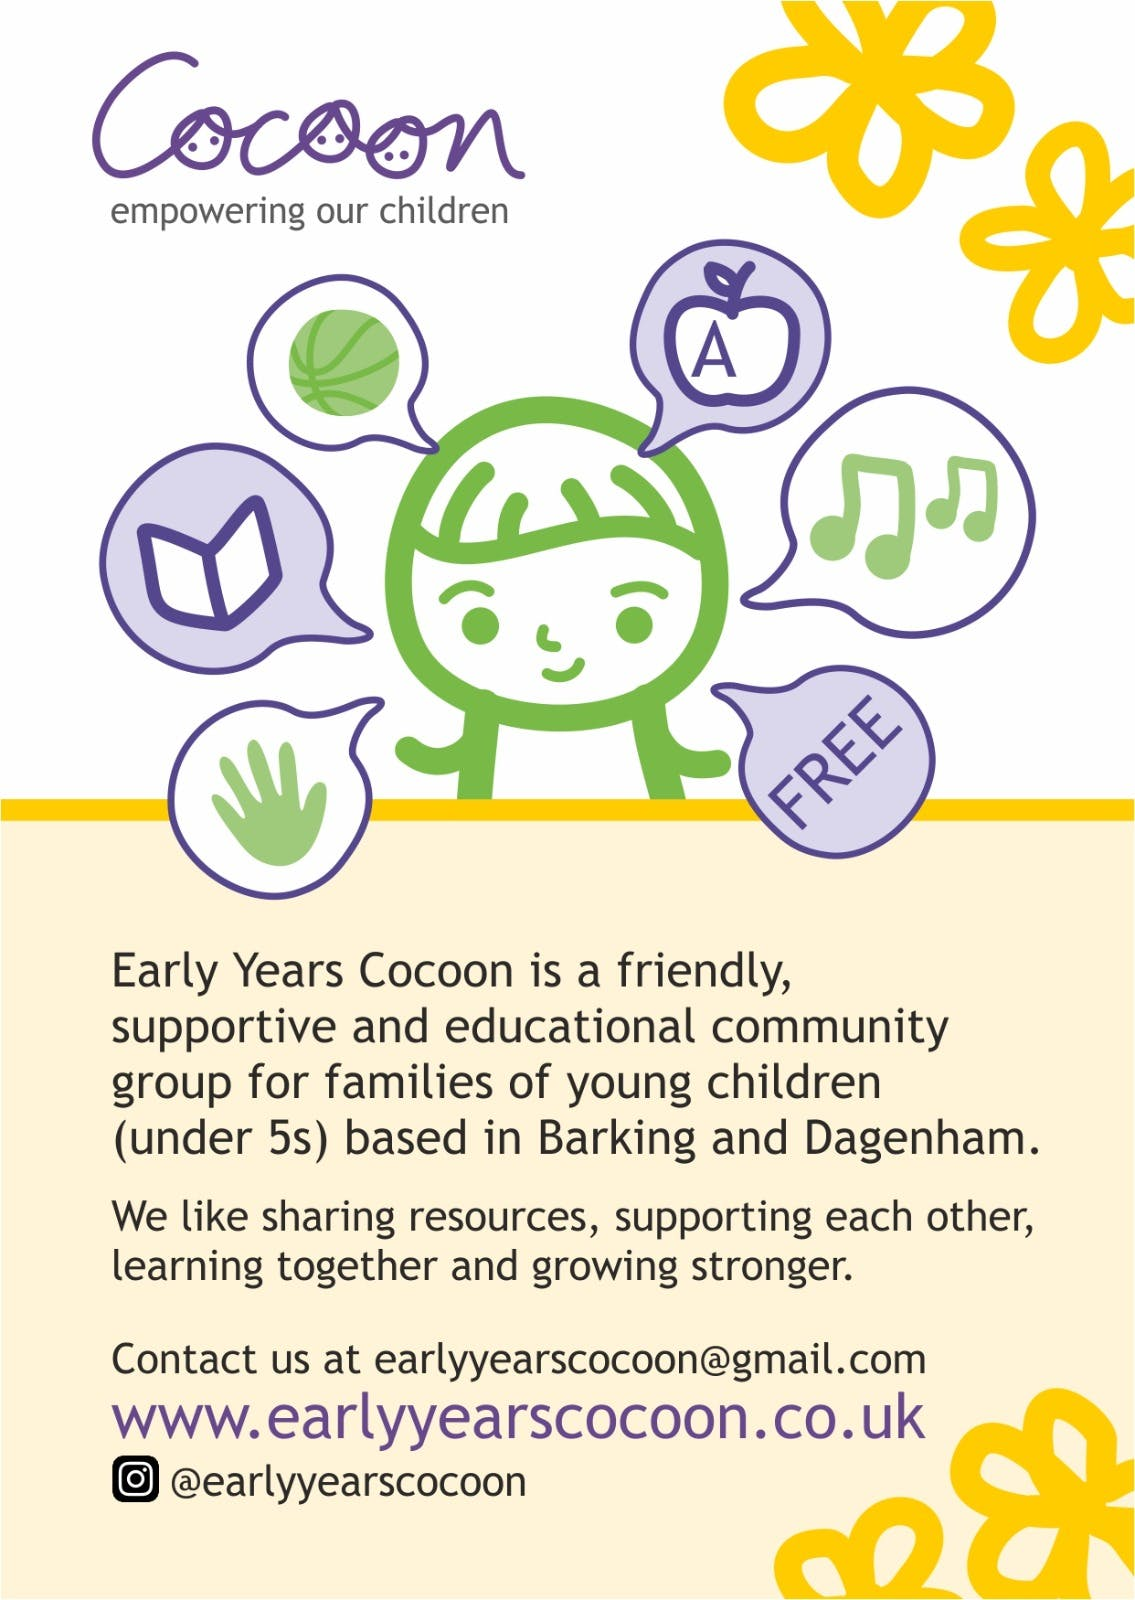 Early Years Cocoon